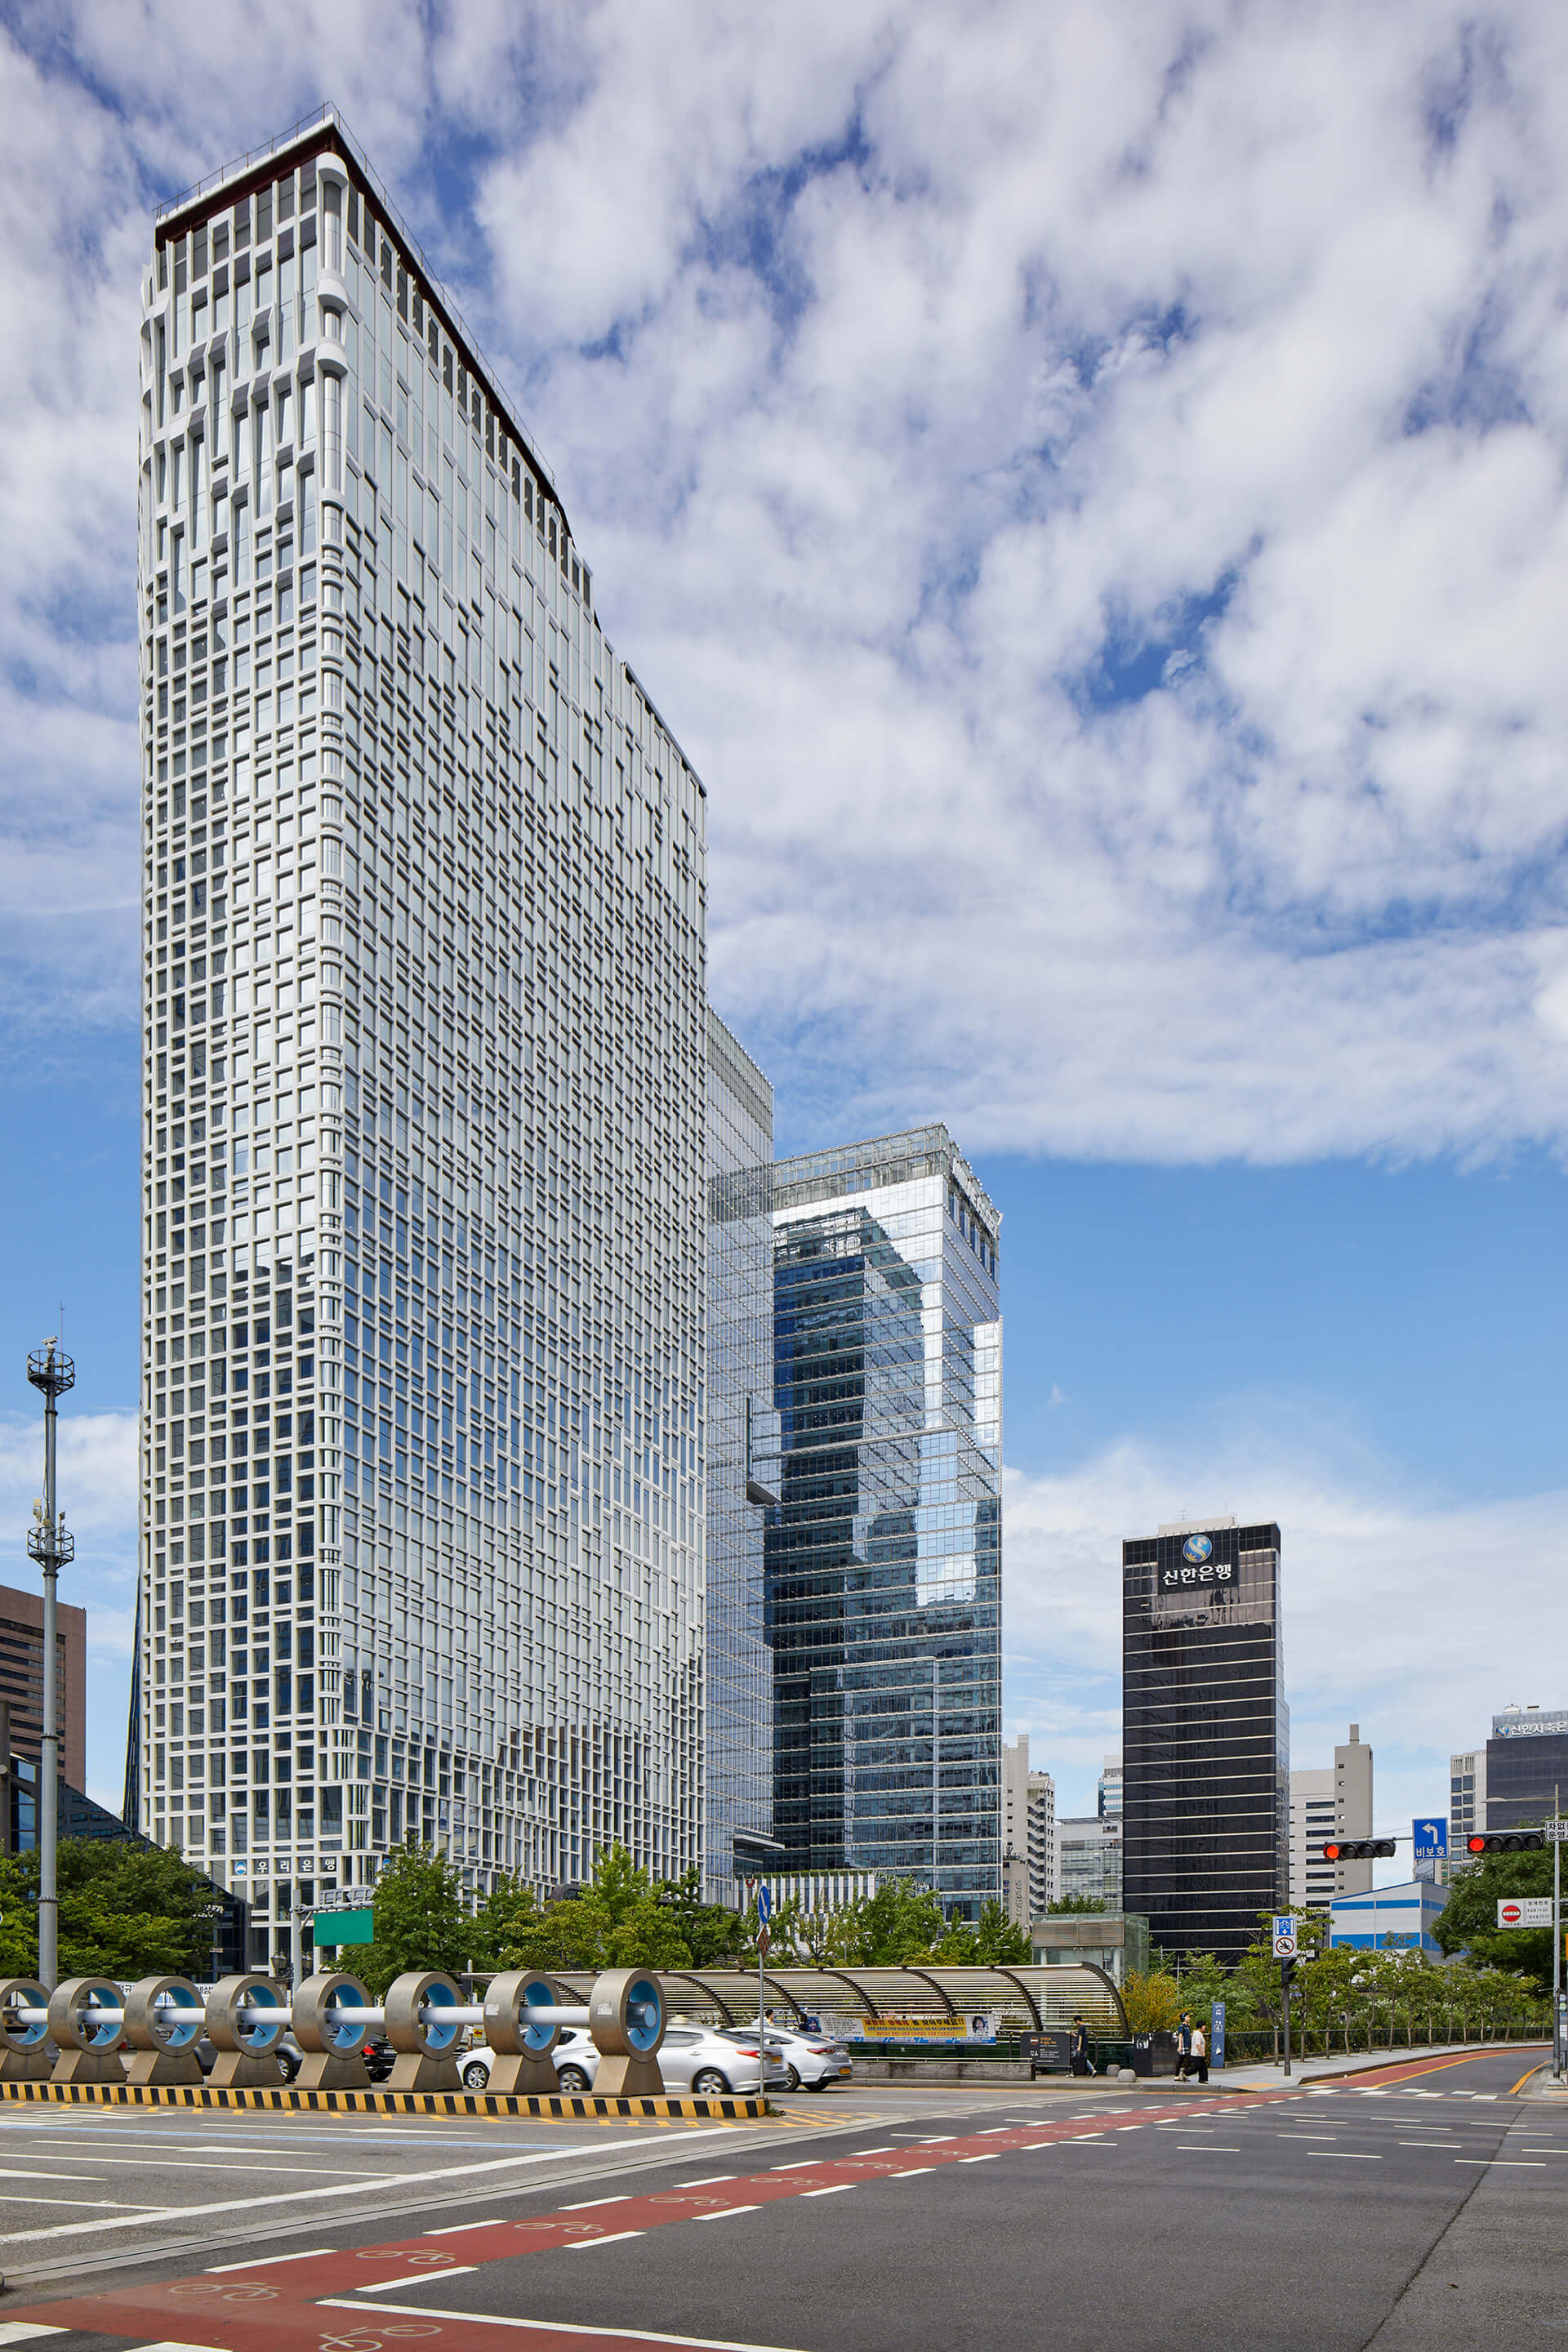 Hanwha Headquarters in Seoul retrofitted by Dutch architectural firm UNStudio | Hanwha Headquarters Remodelling by UNStudio | STIRworld